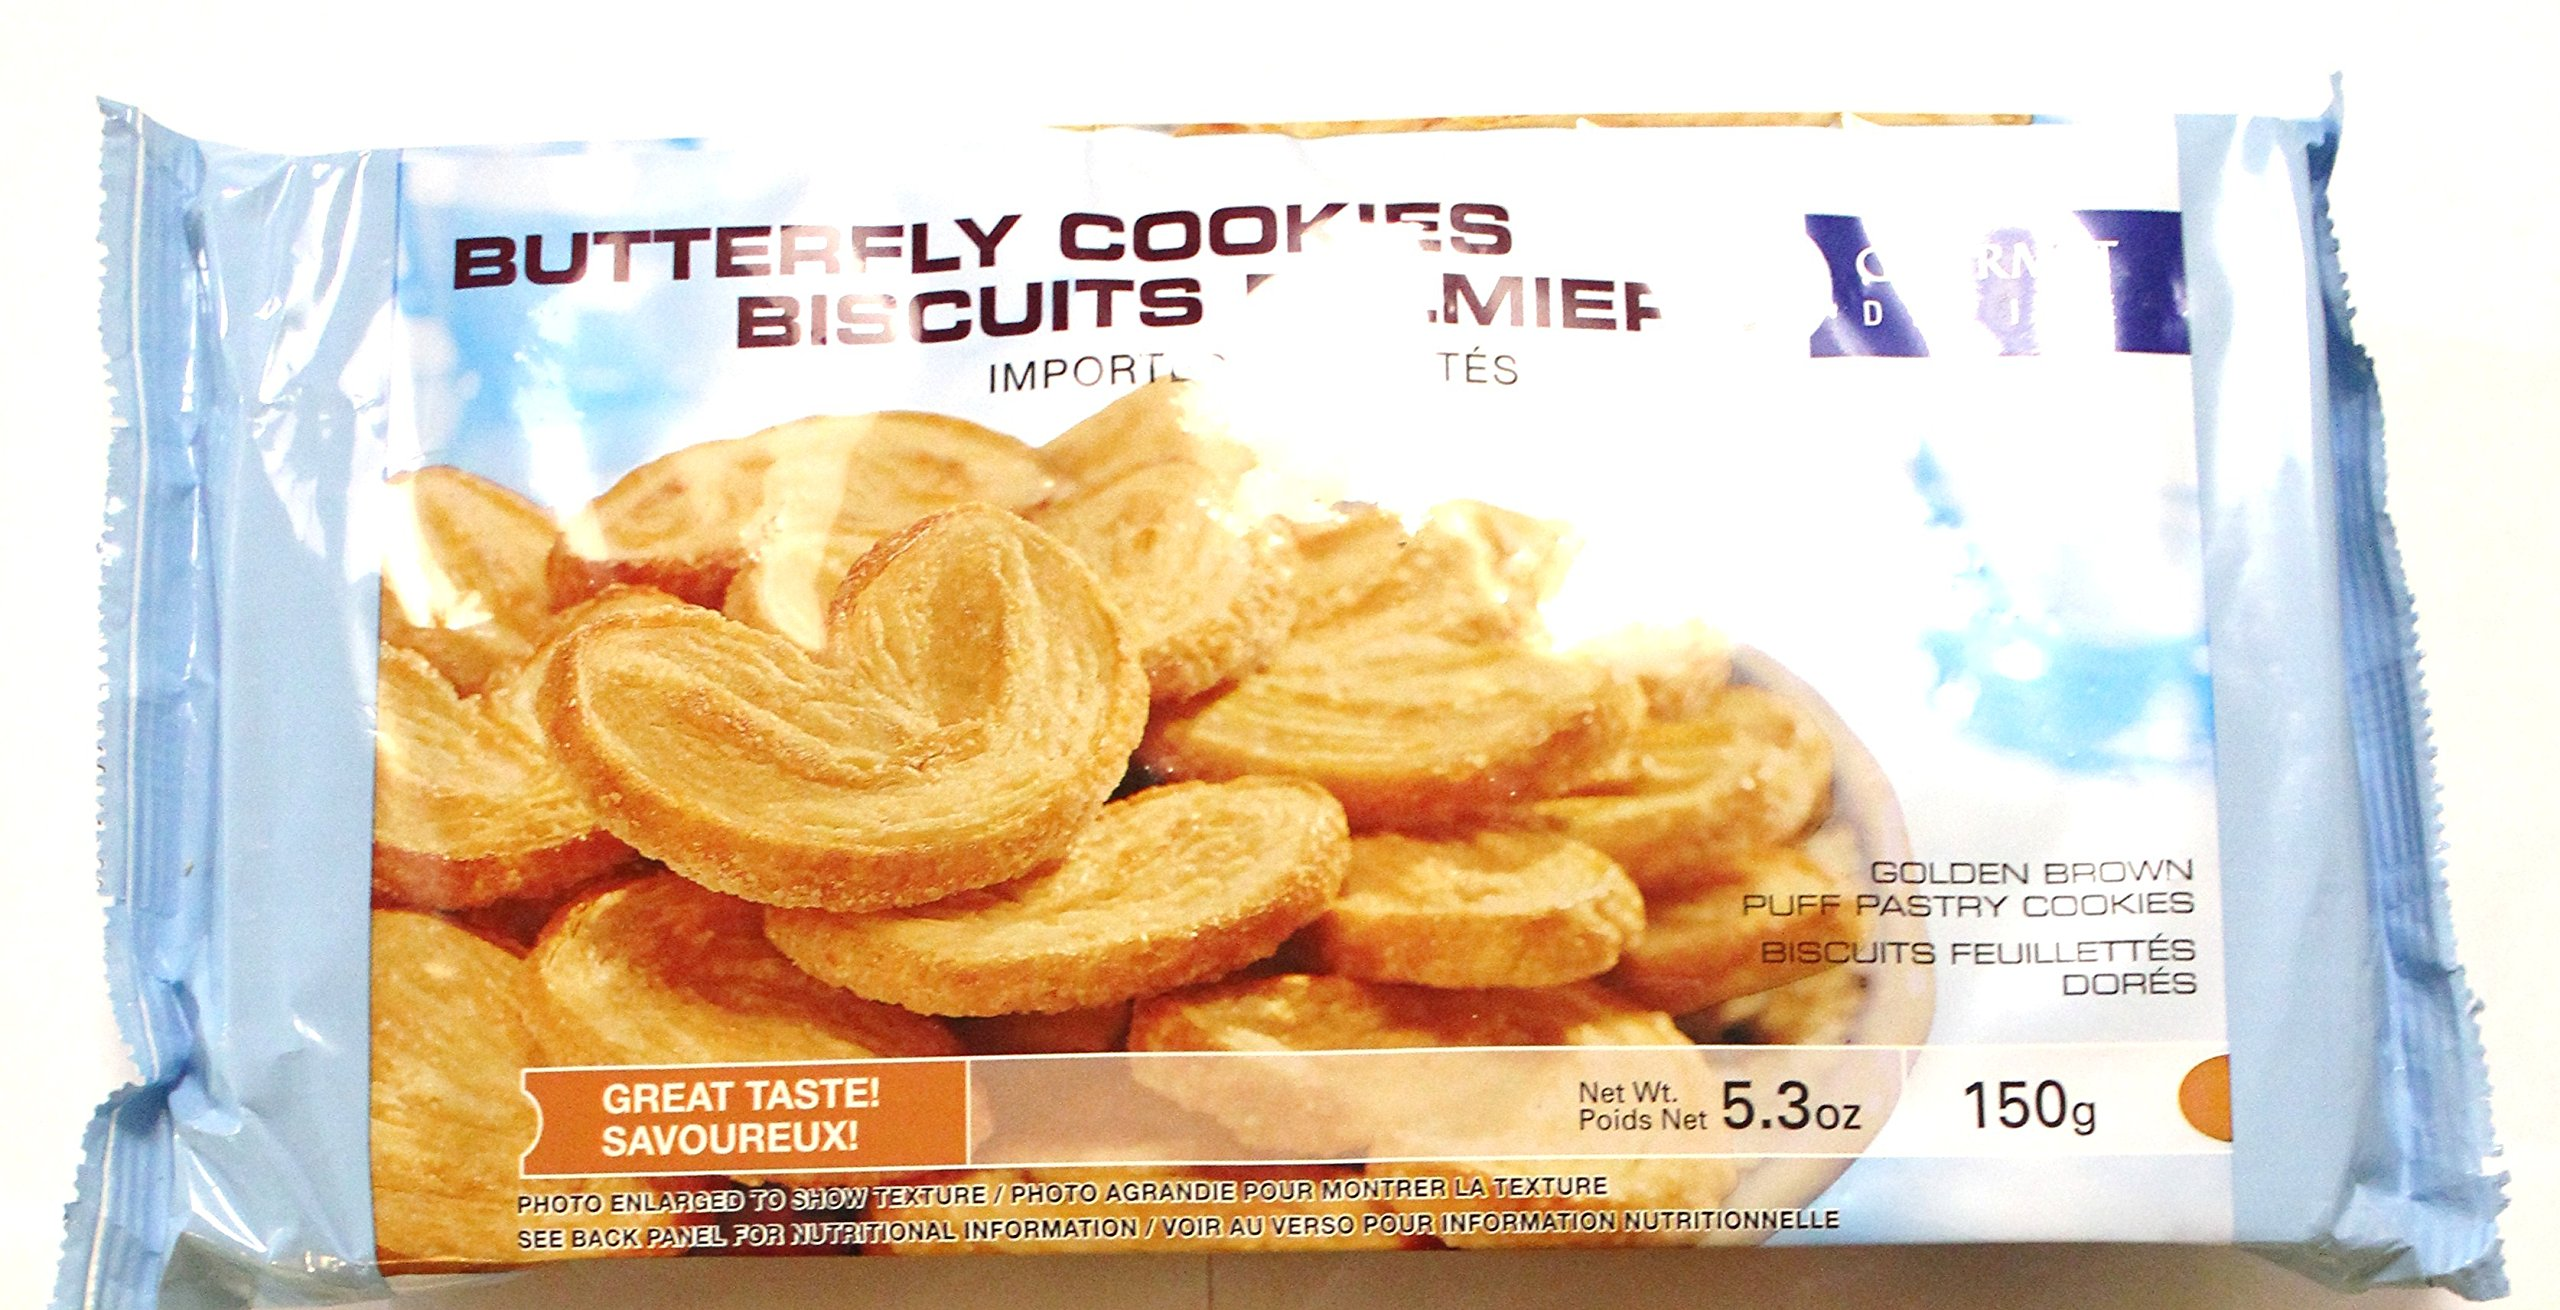 Butterfly Cookies Biscuits Palmiers, 150g 5.3oz (Pack of 4)